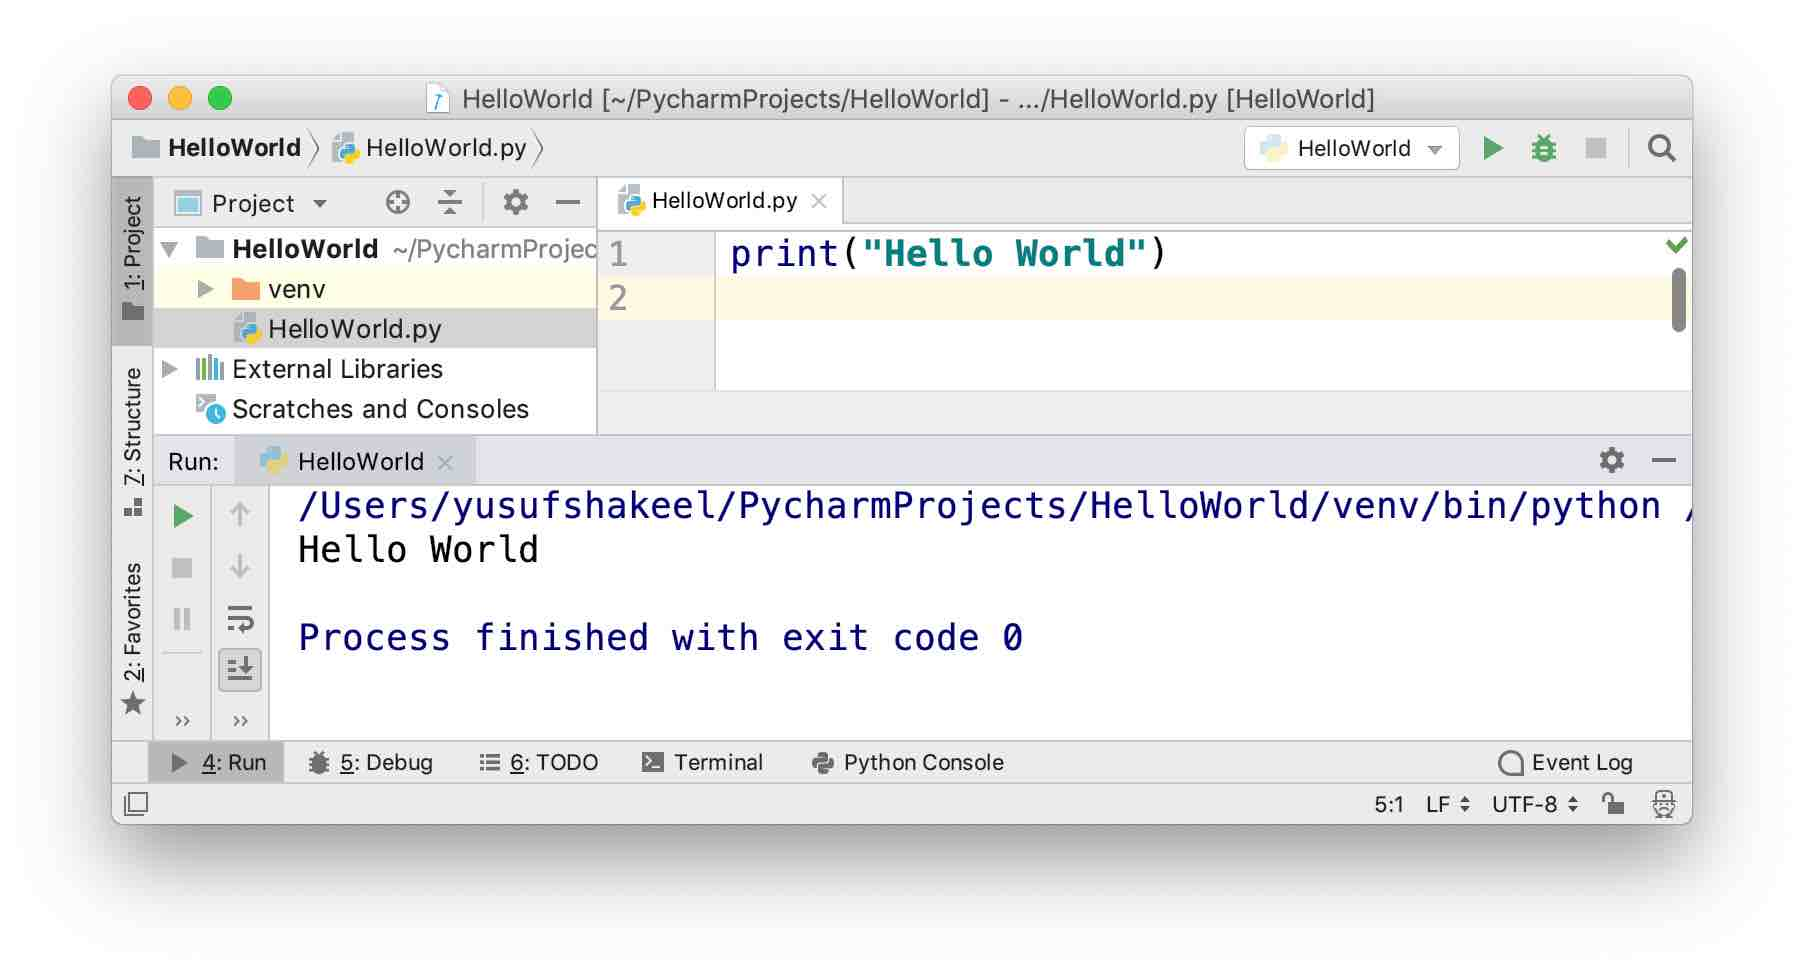 pycharm community edition - run hello world program output